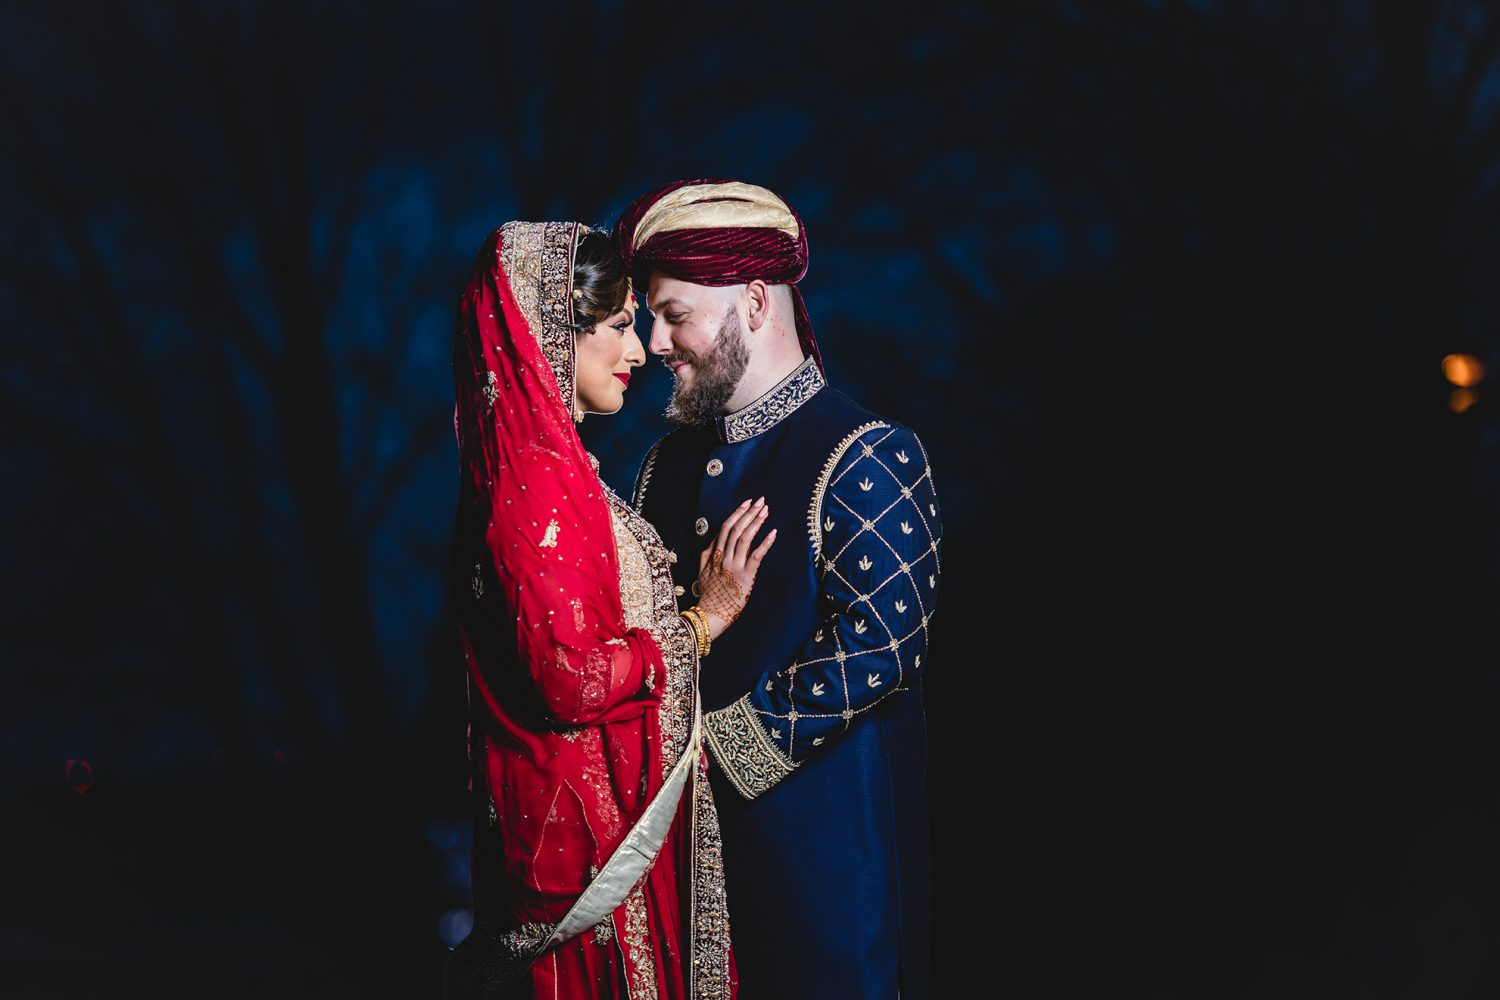 south_asian_wedding_photography_dhoom_studio_new_york82-e1573099440347 SOUTH ASIAN WEDDINGS